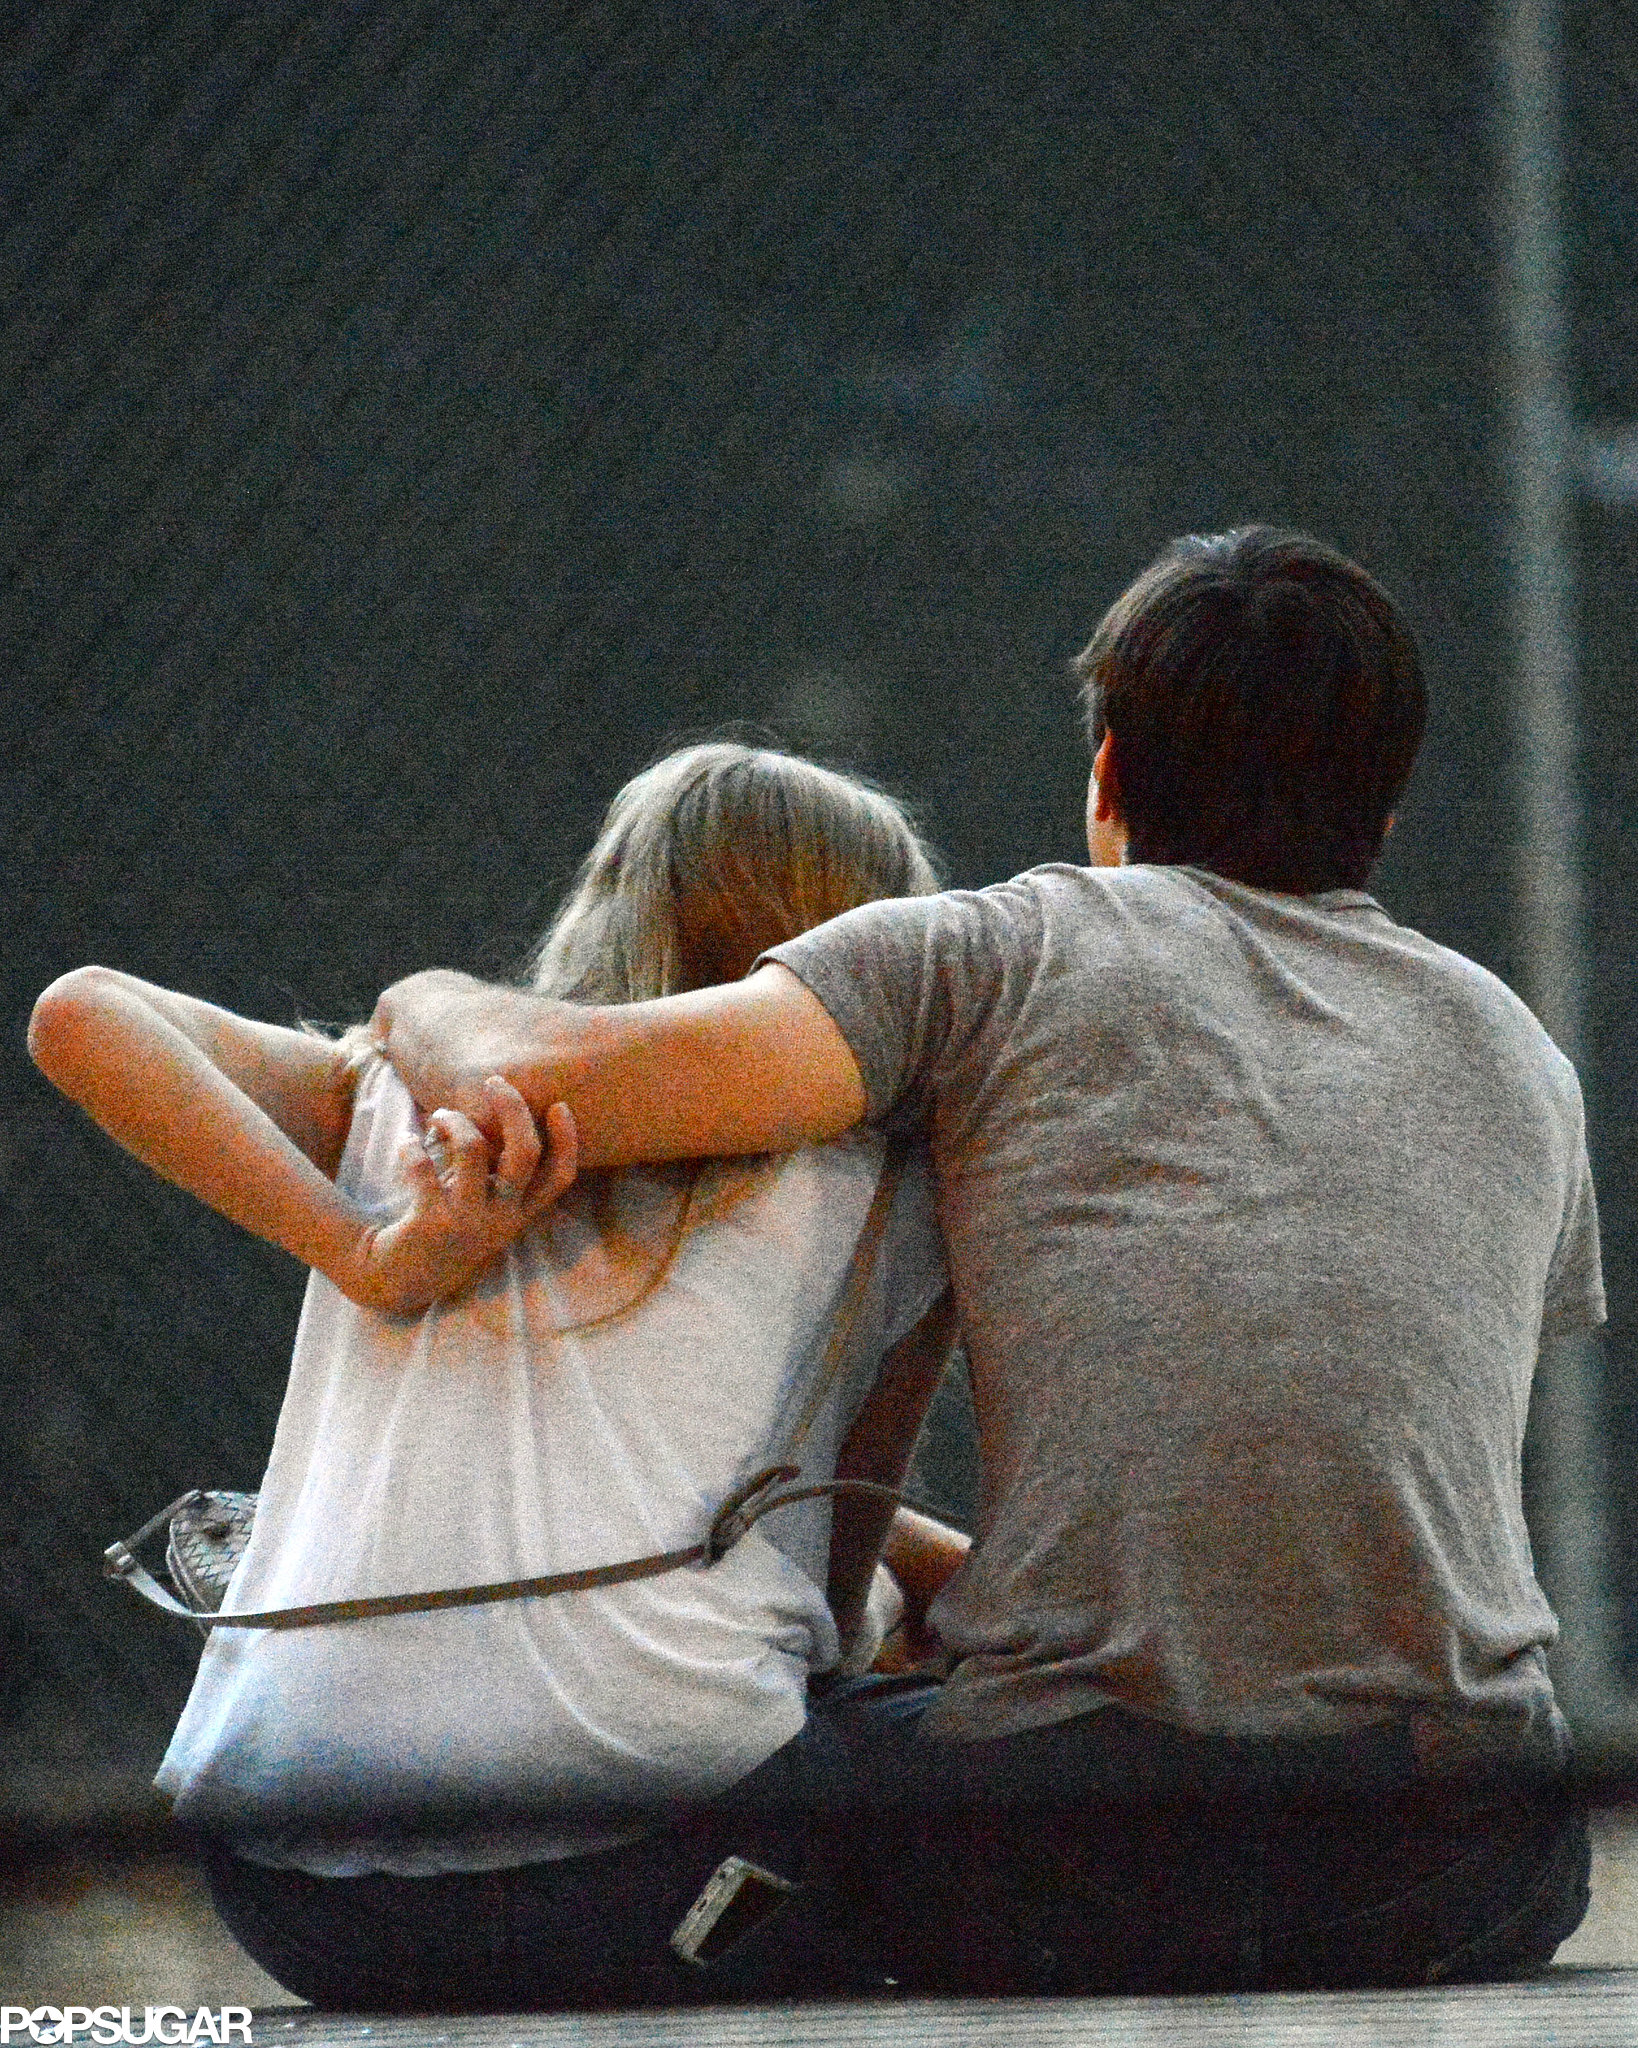 Amanda Seyfried and Justin Long couldn't keep their hands off each other in NYC.